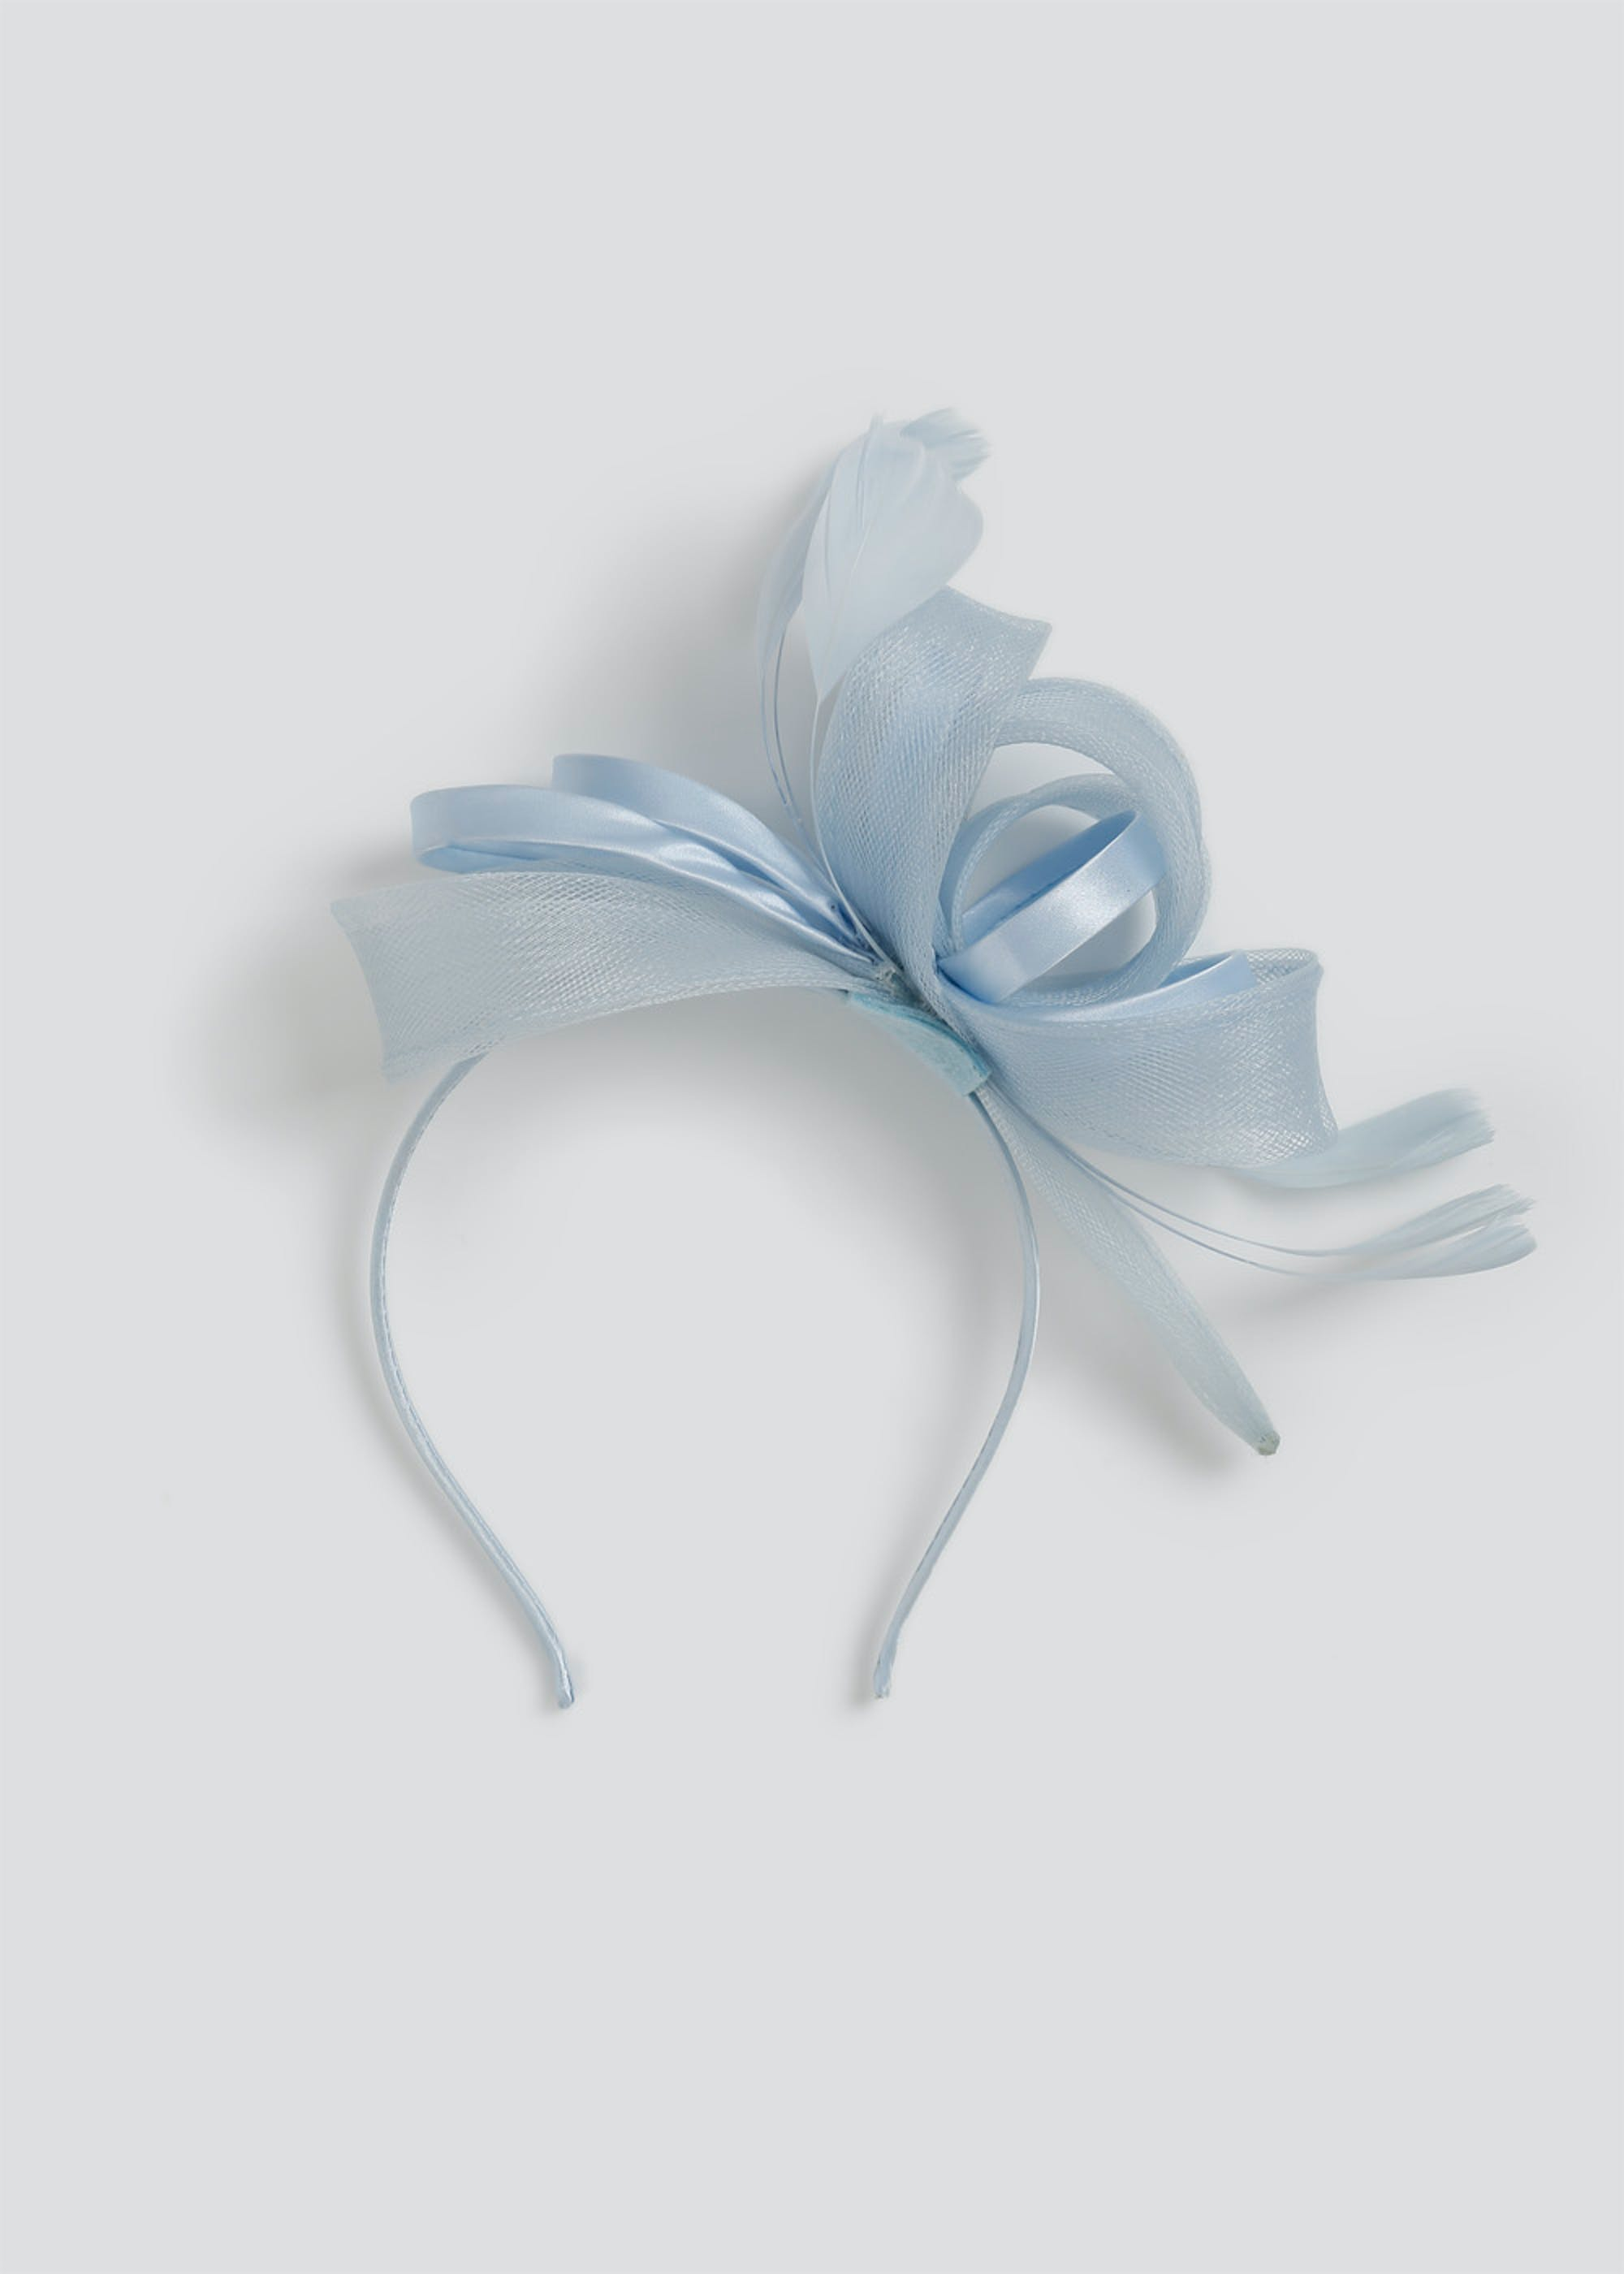 Loop Feather Fascinator Headband Sky Blue QWmCT6